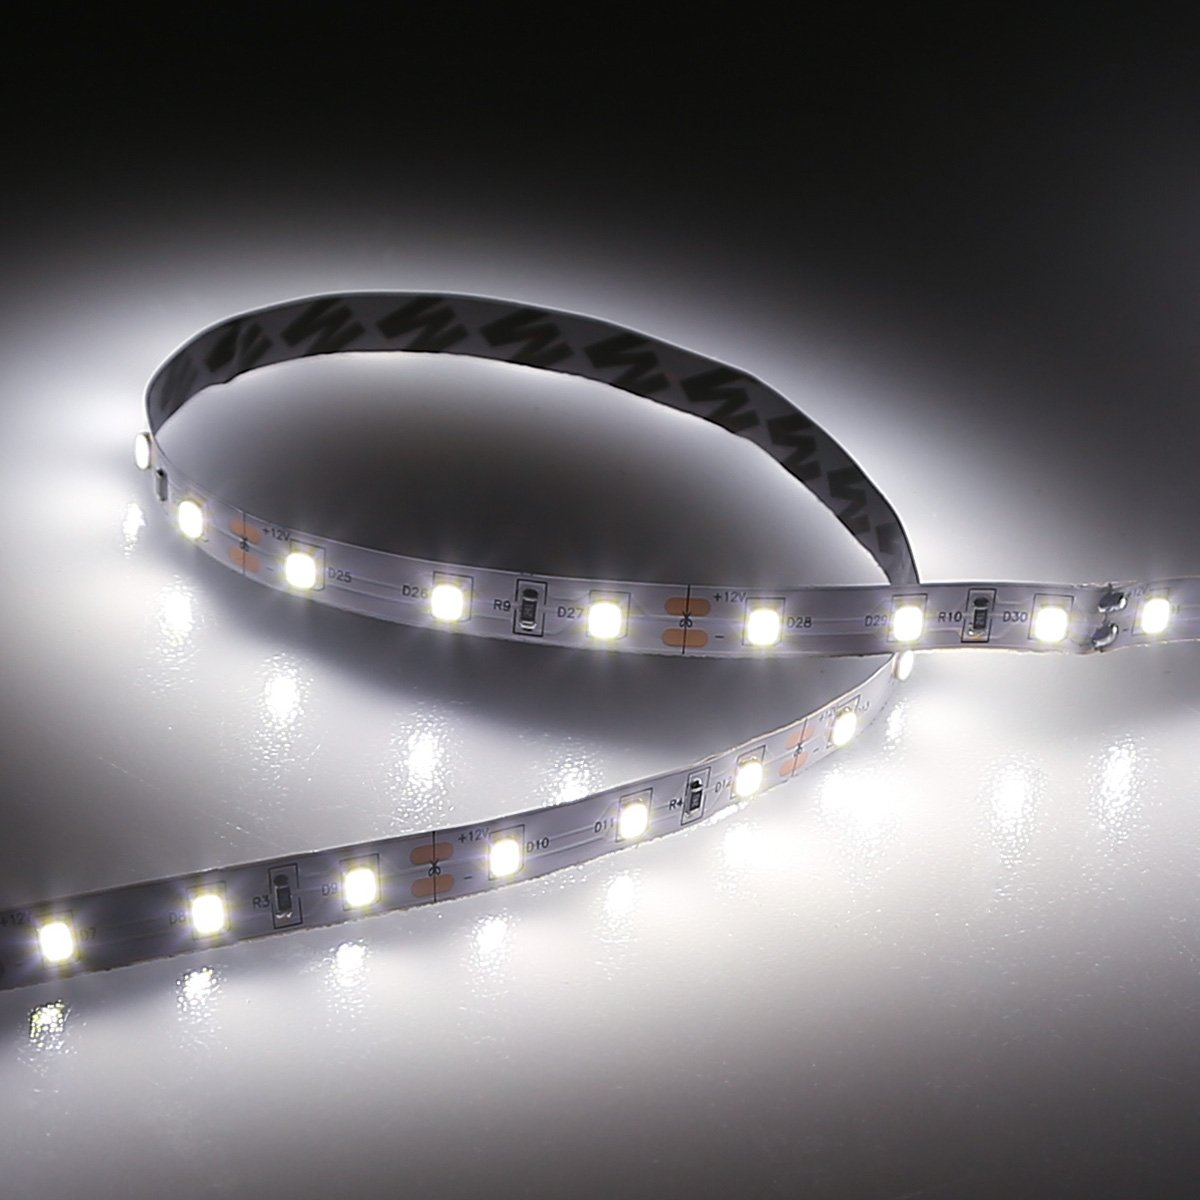 Amazon le 164ft led flexible light strip 300 units smd 2835 amazon le 164ft led flexible light strip 300 units smd 2835 leds 12v dc non waterproof light strips led ribbon diy christmas holiday home kitchen aloadofball Gallery